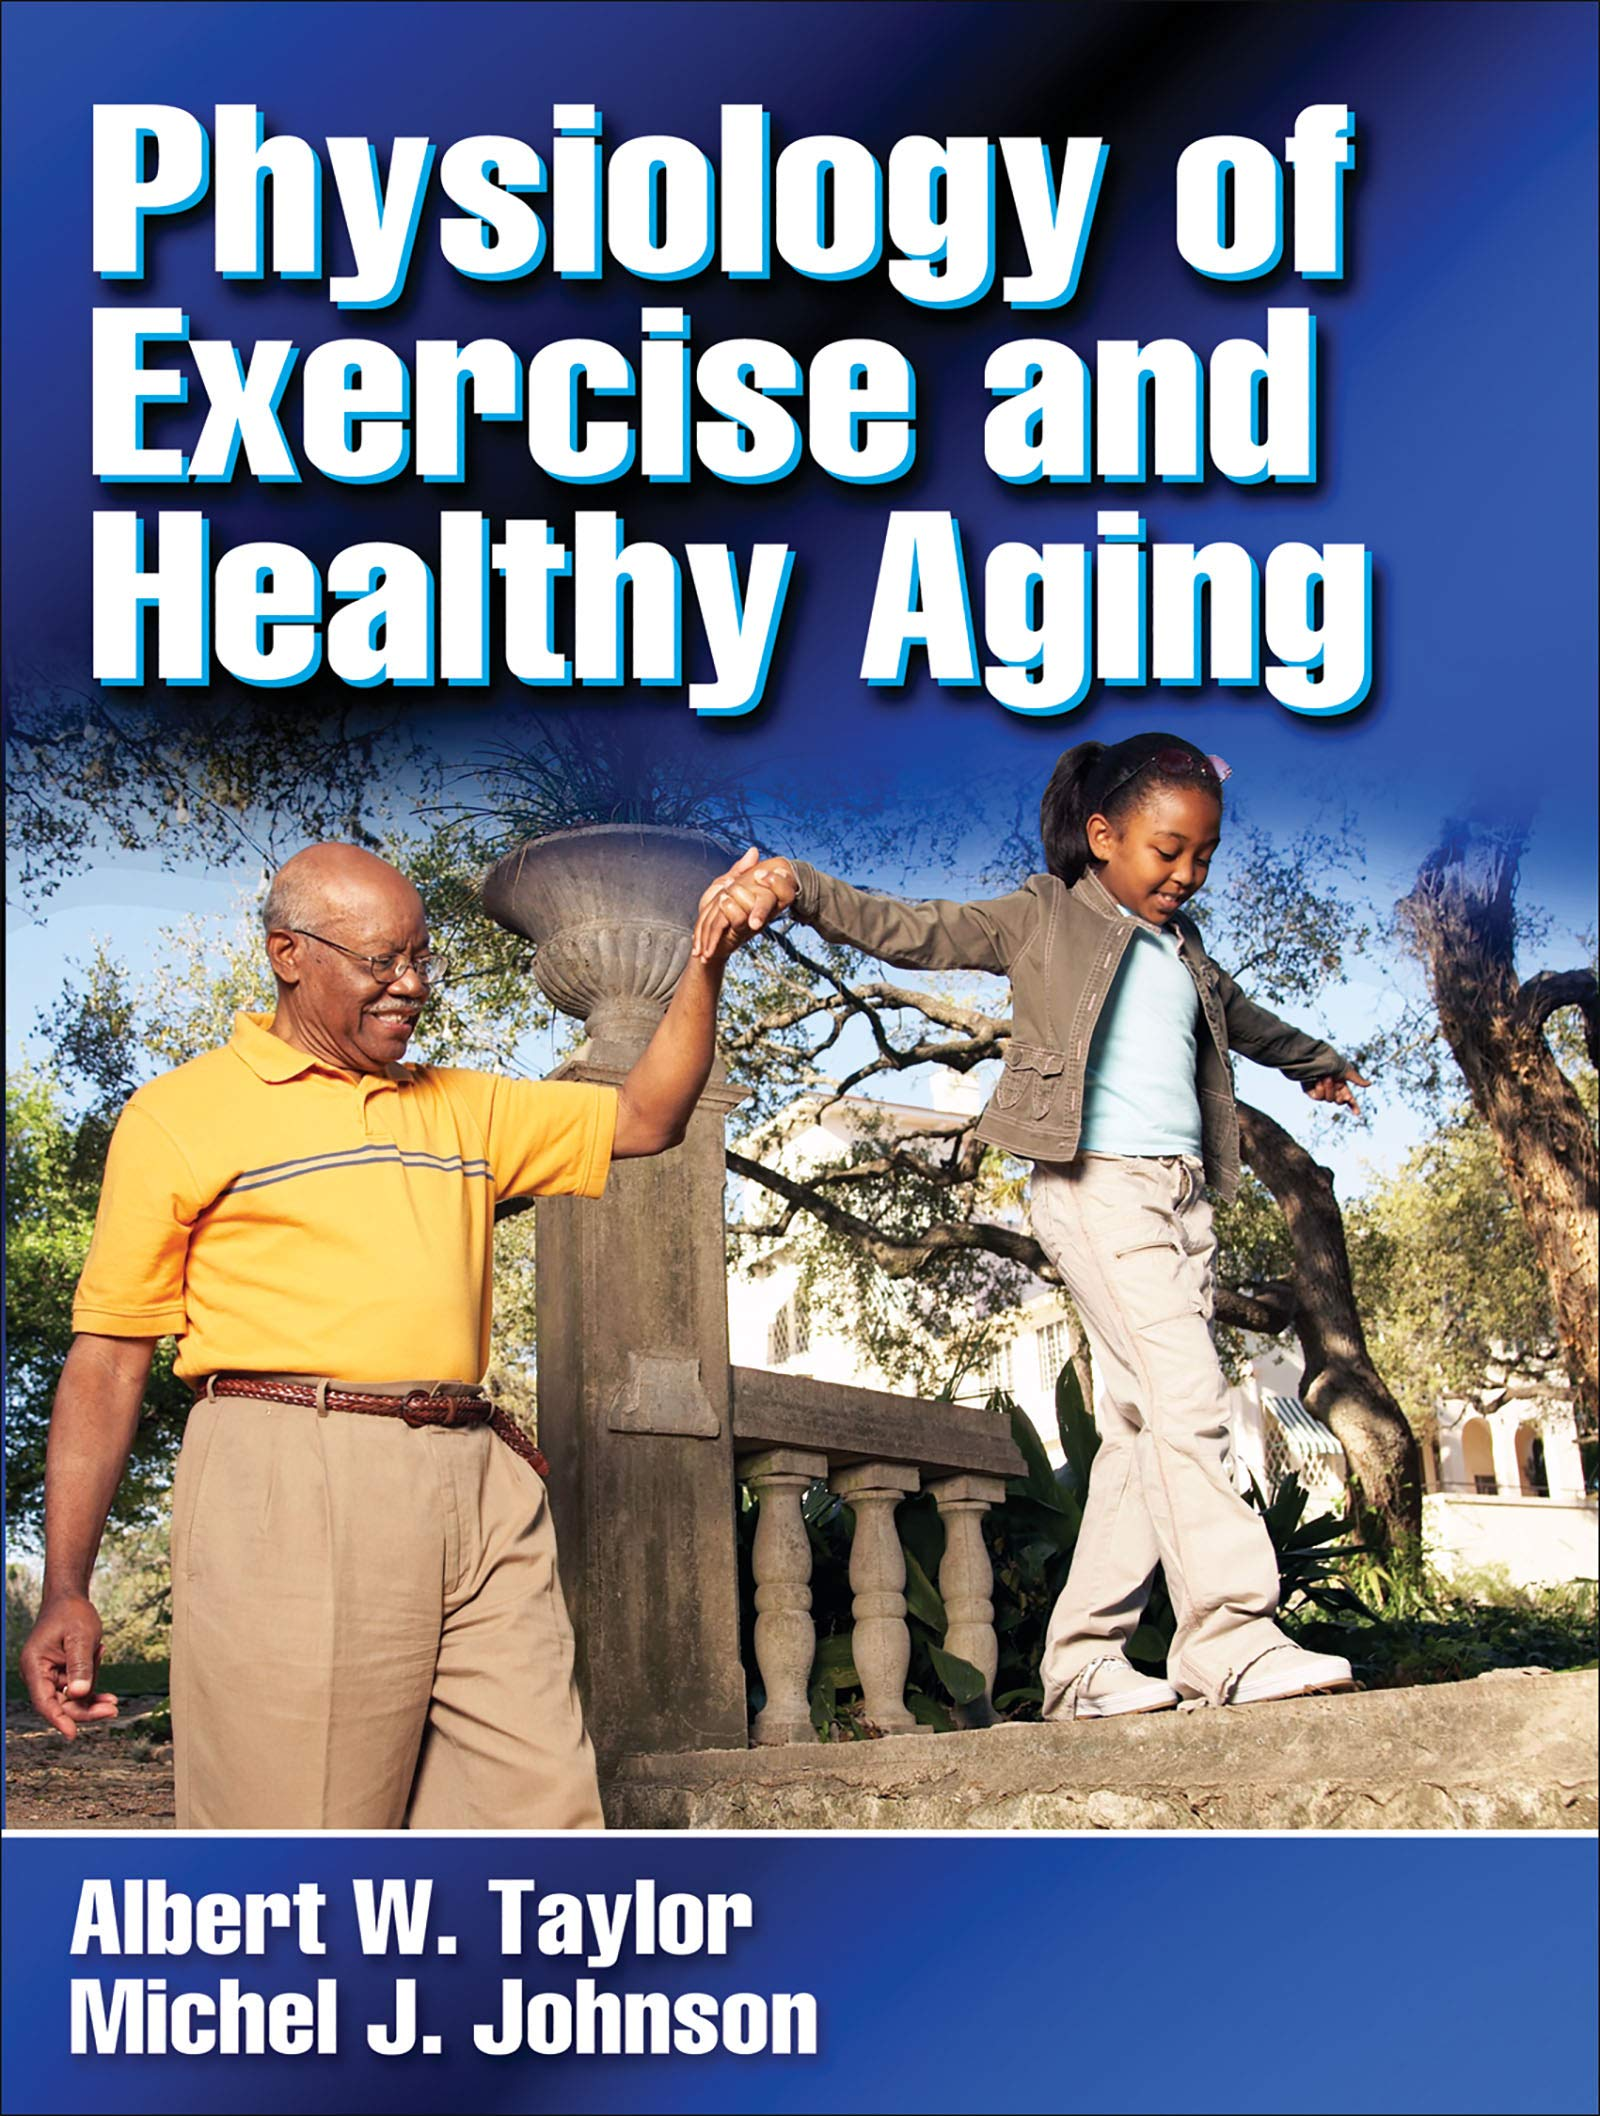 Image OfPhysiology Of Exercise And Healthy Aging